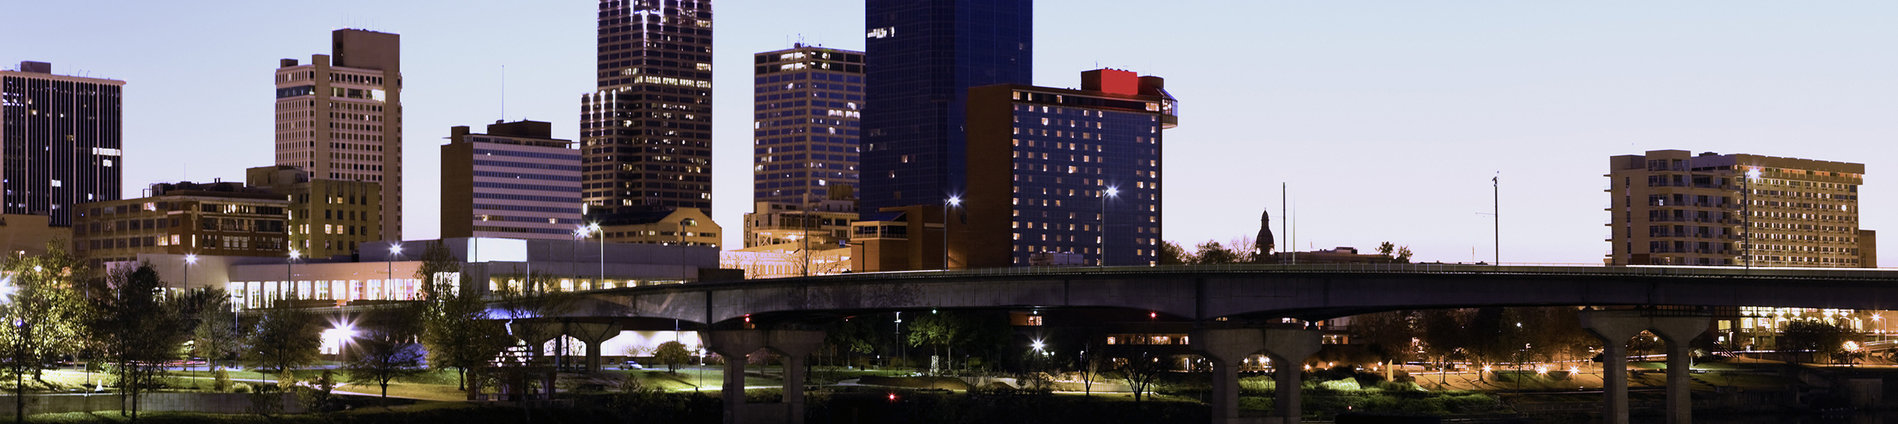 Little Rock, Arkansas City Skyline